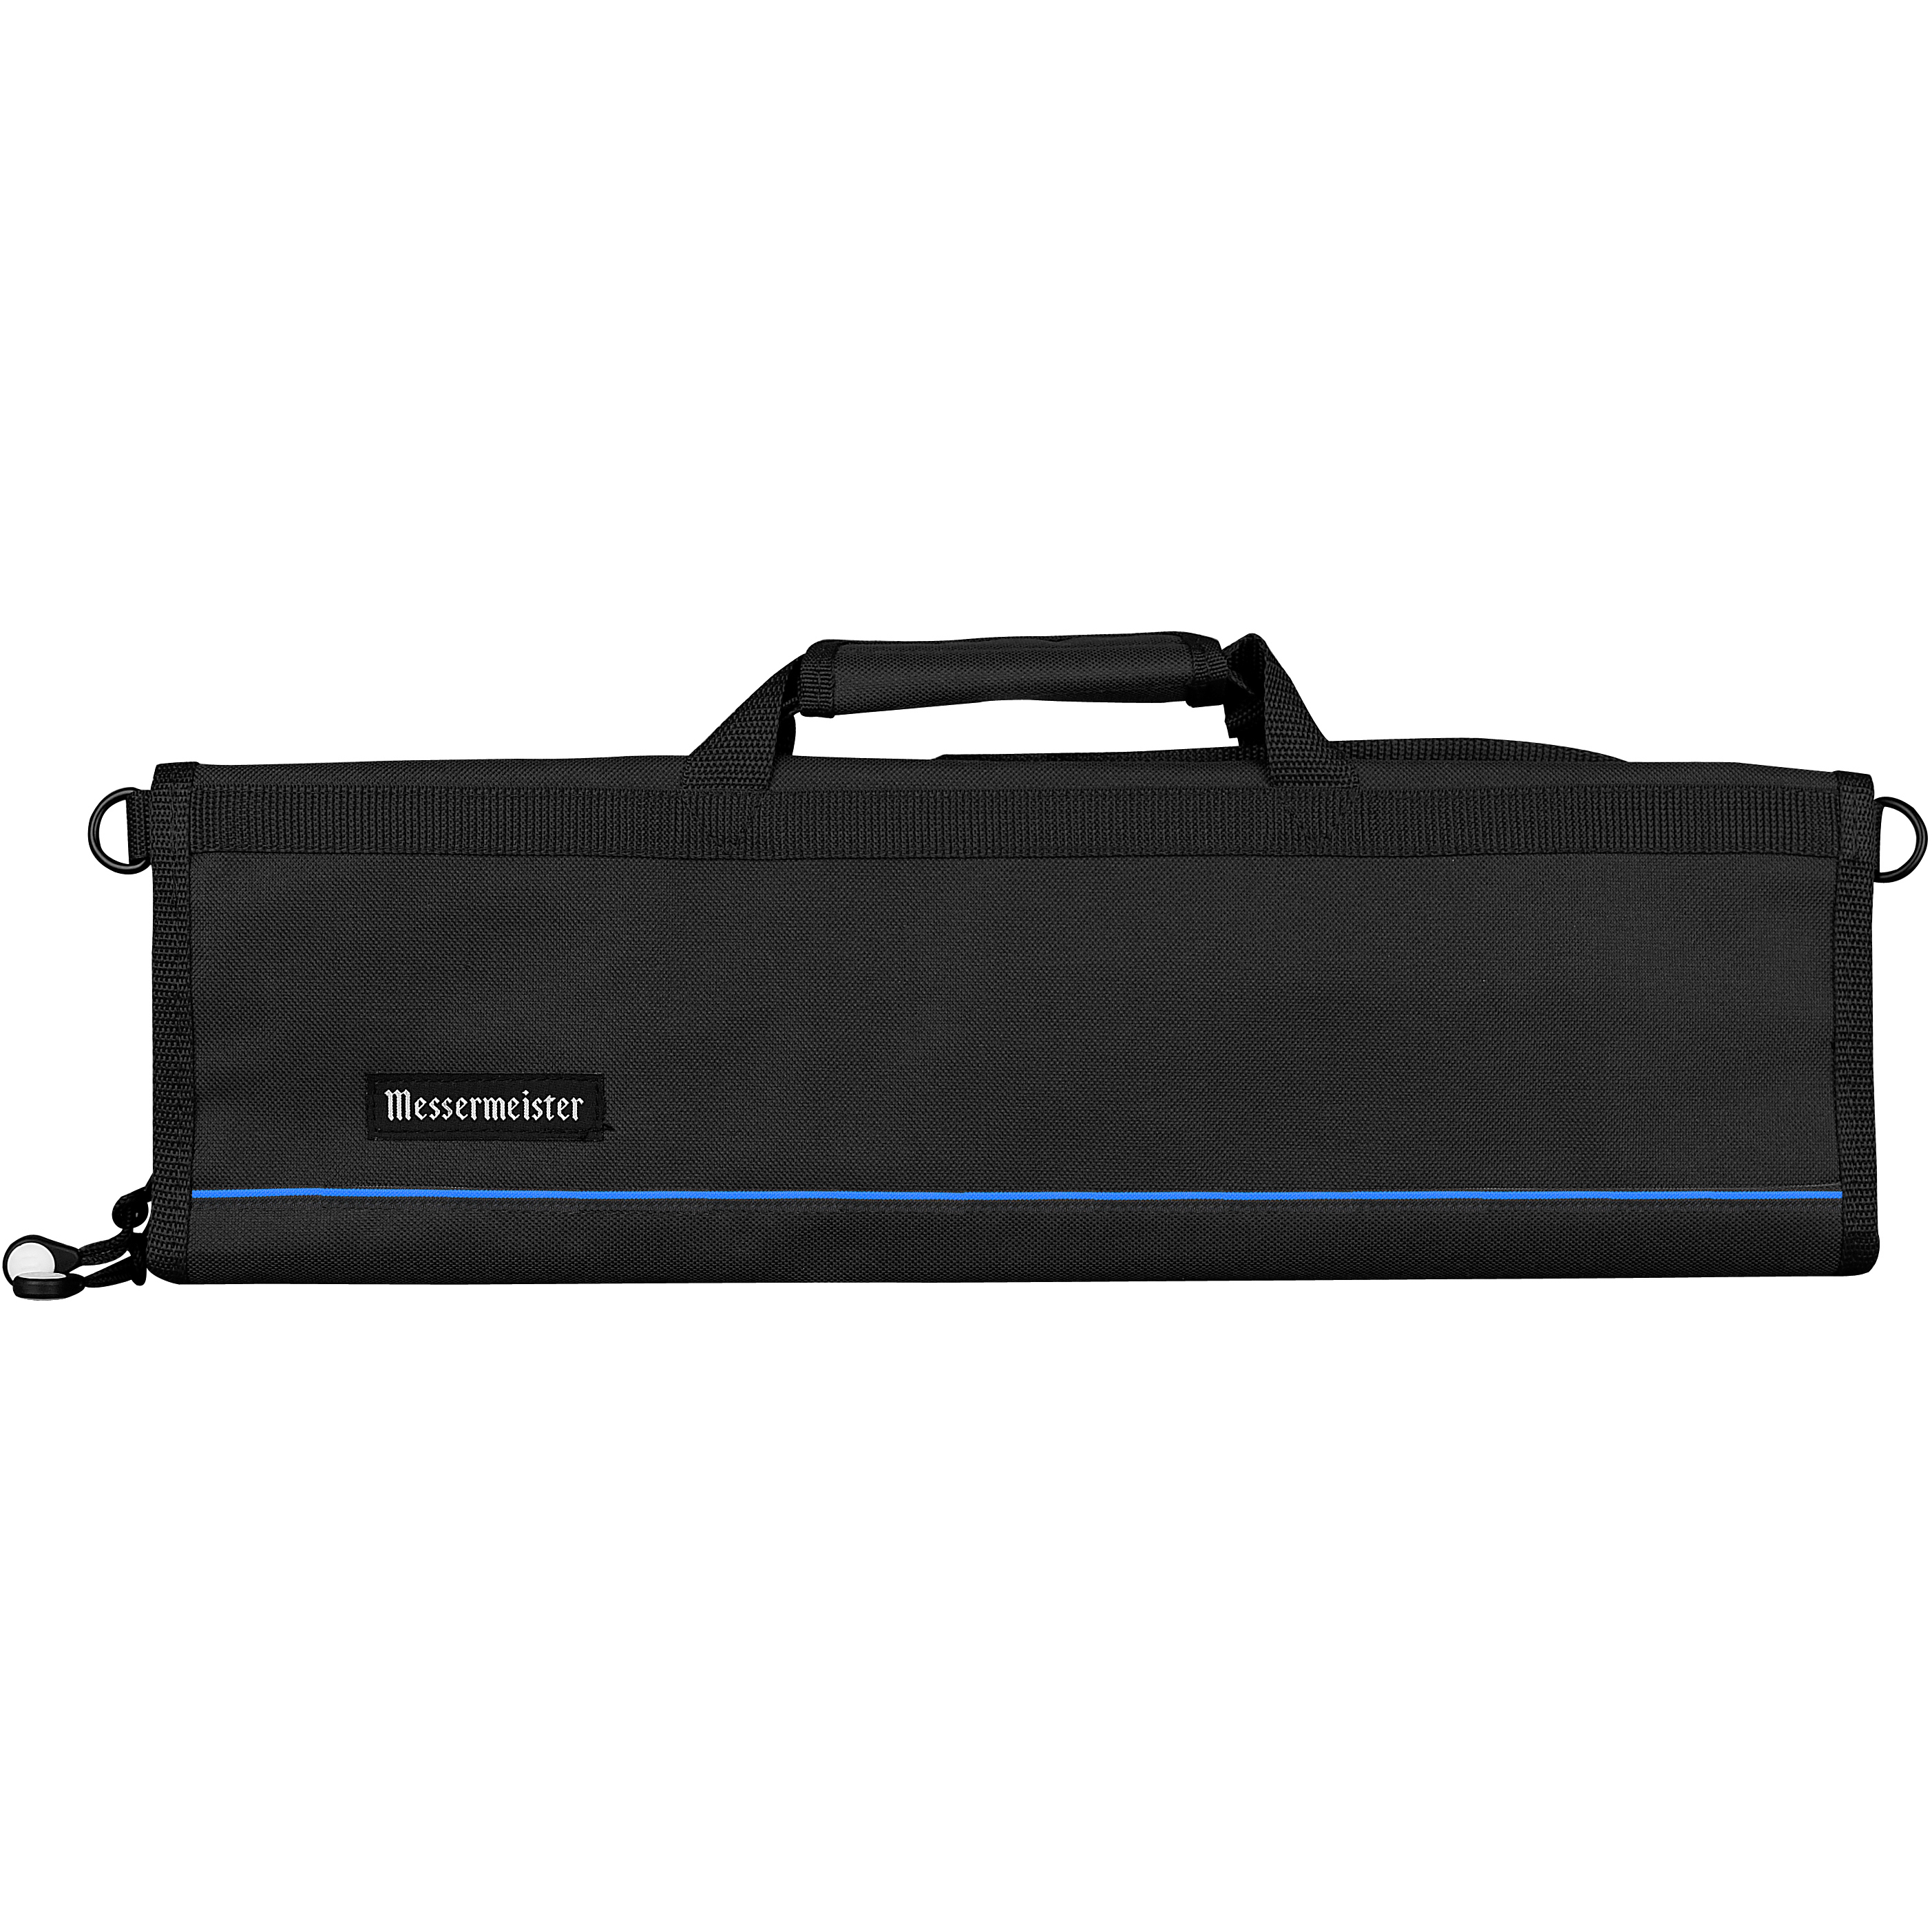 Messermeister Black Polyester 8 Pocket Padded Knife Bag